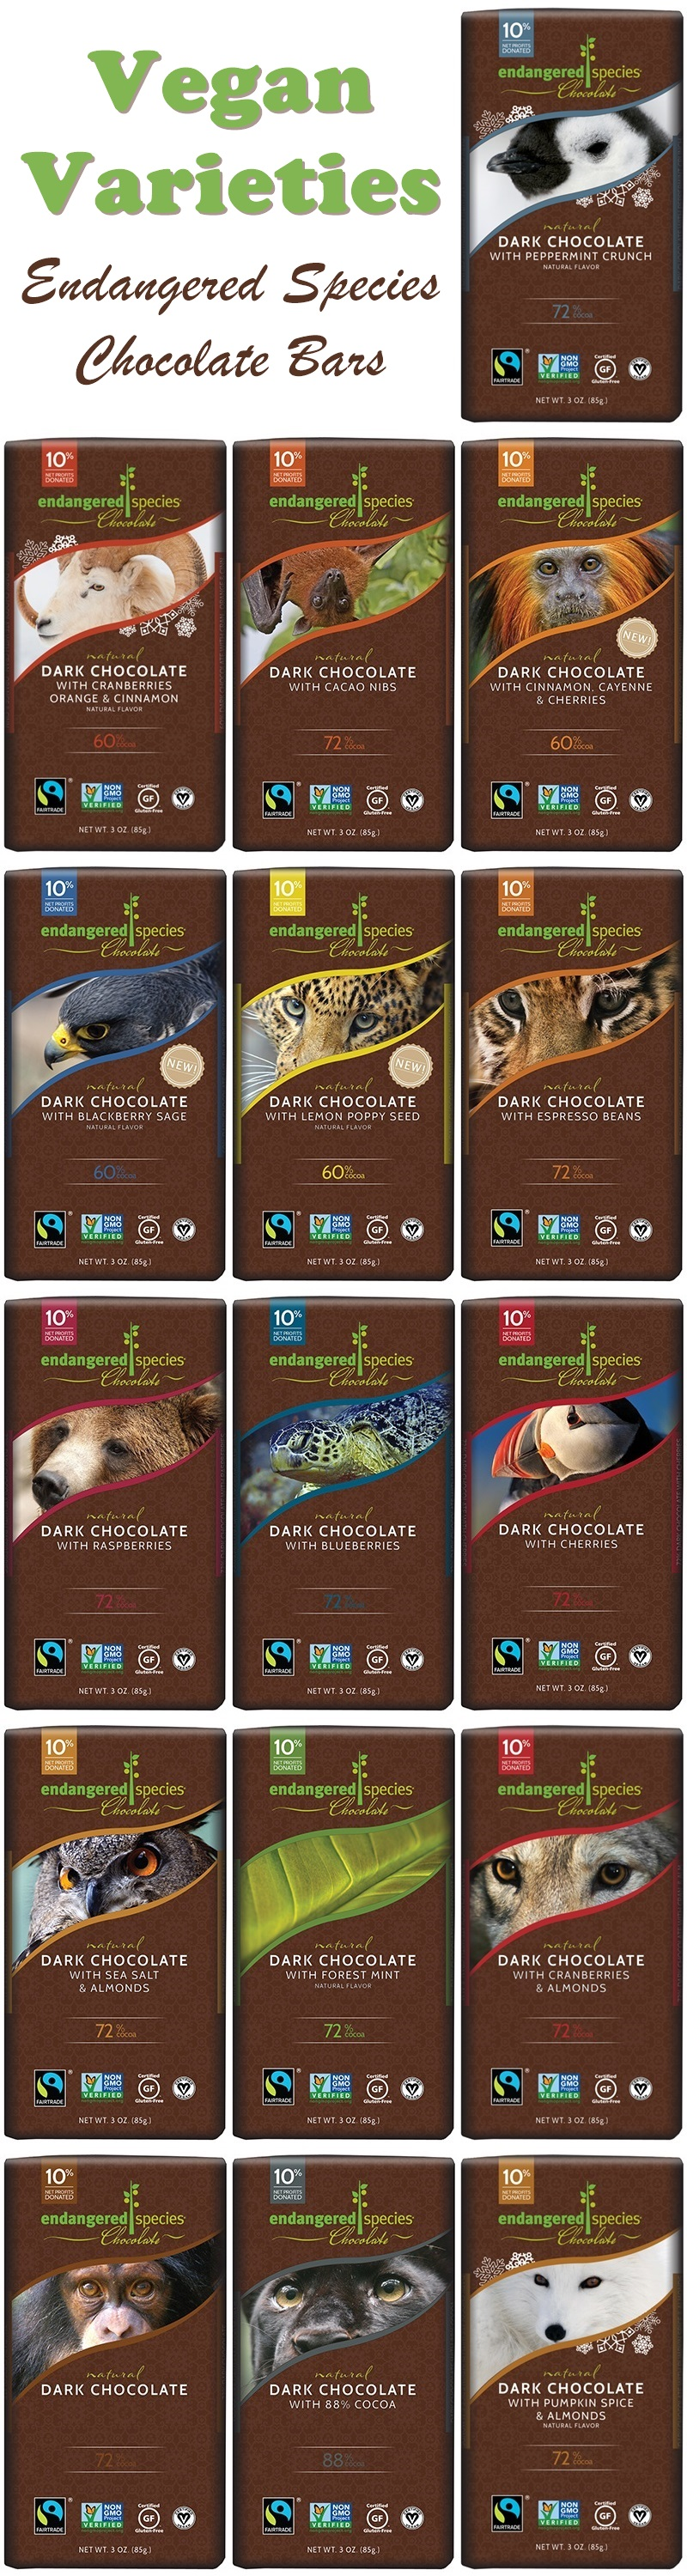 Endangered Species Chocolate Bars - Review and List of Vegan and Dairy-Free Varieties